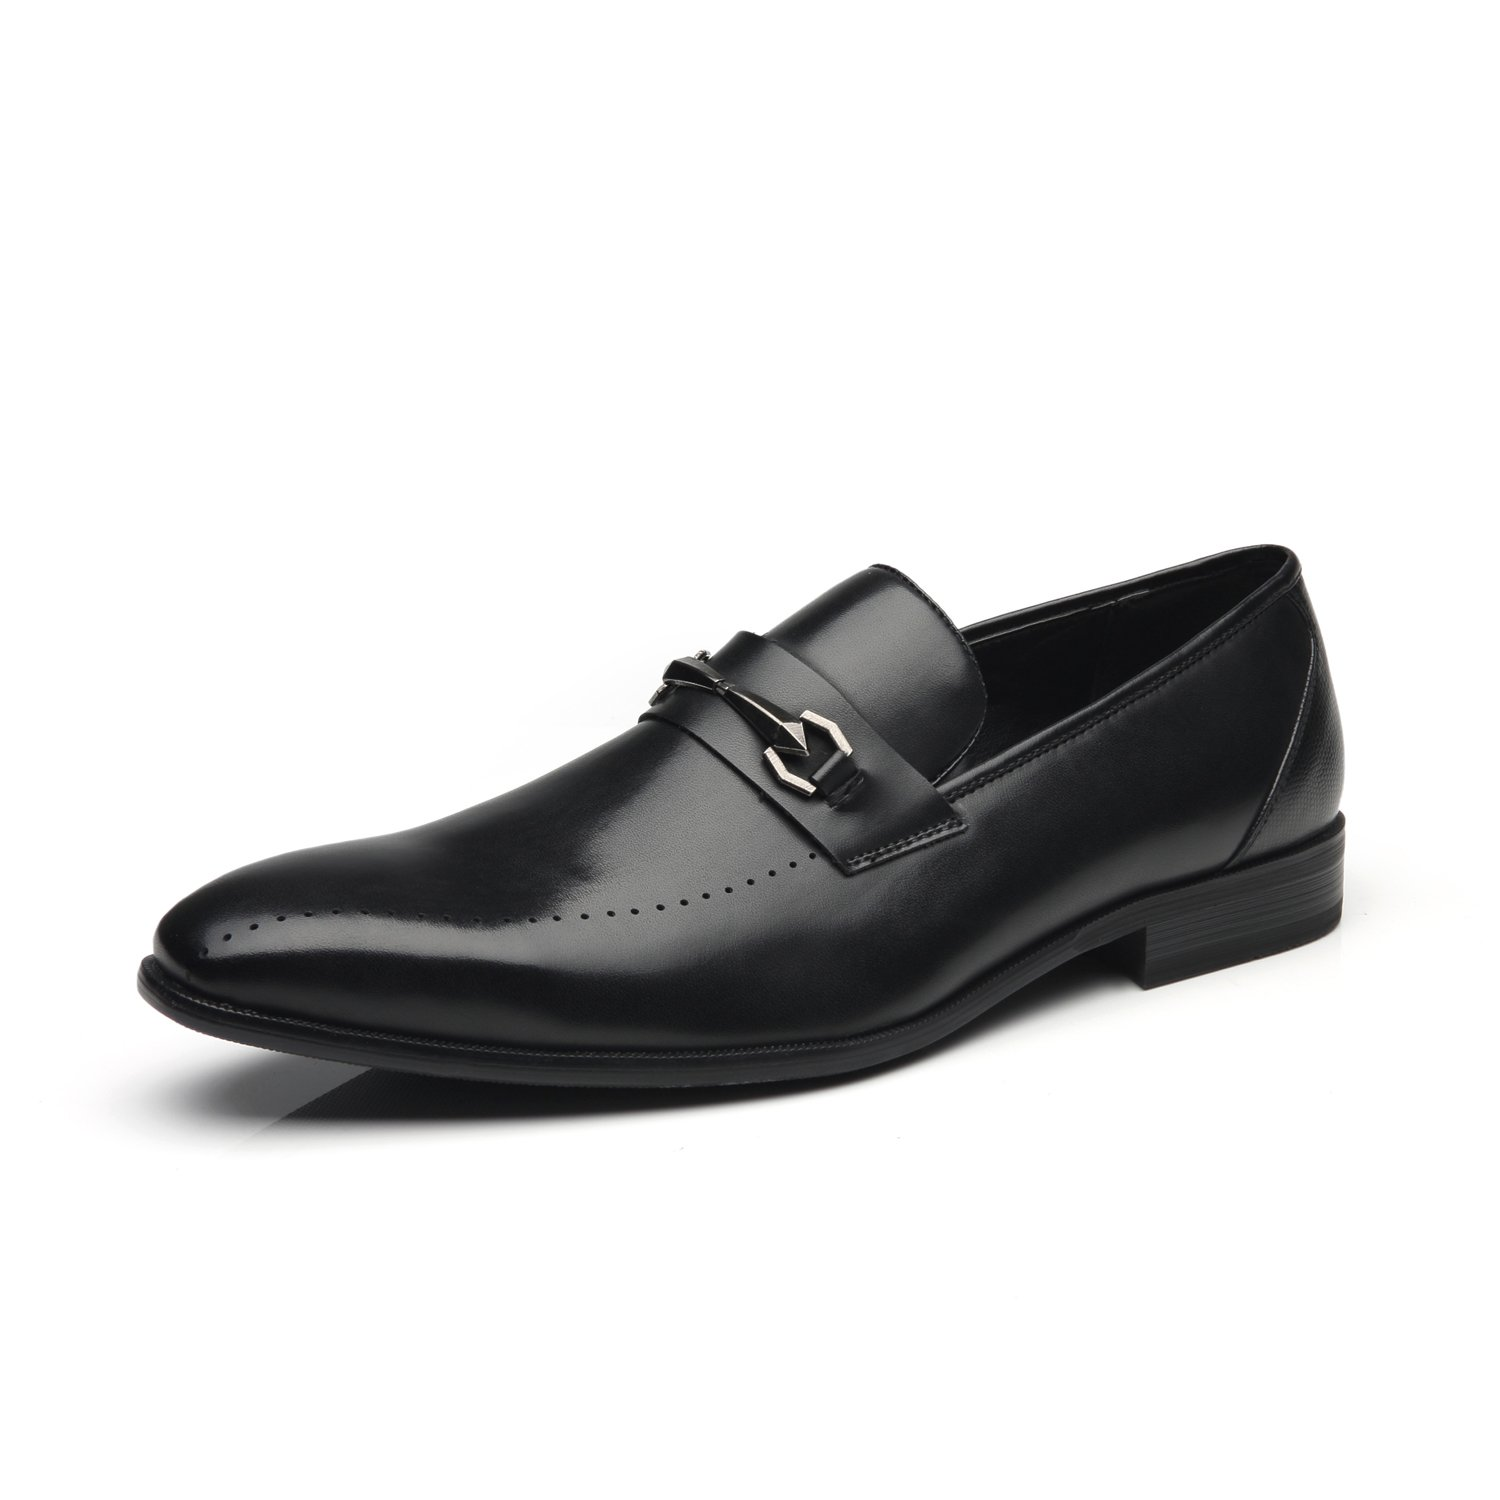 Faranzi Men Dress Shoes Slip On Buckle Loafer Shoes for Men Zapatoe de Hombre Loafer Comfortable Classic Modern Formal Casual Business Shoes